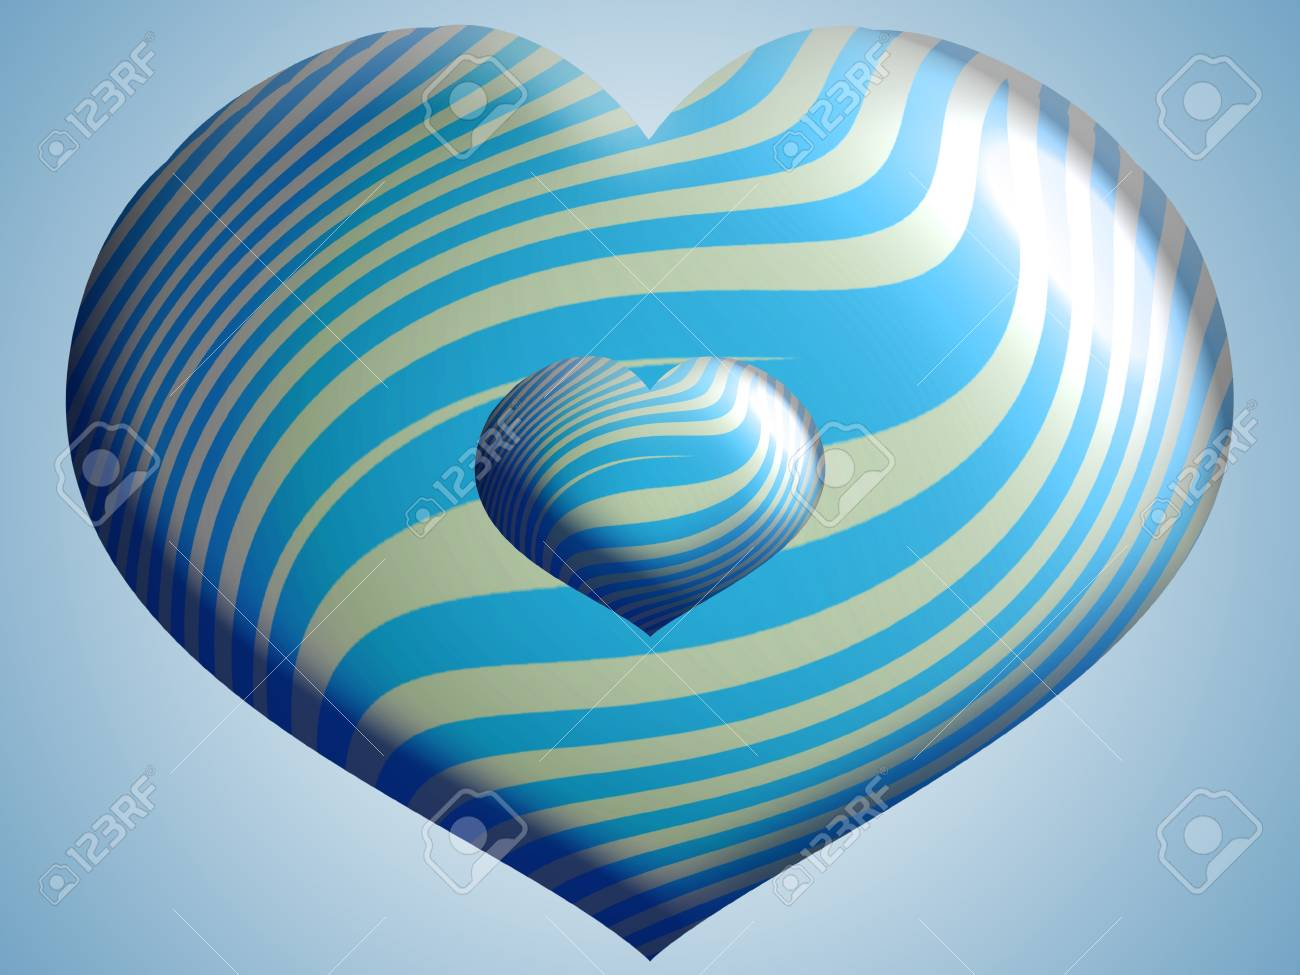 Couple of blue hearts strped metal balloon over the sky Stock Photo - 13792455